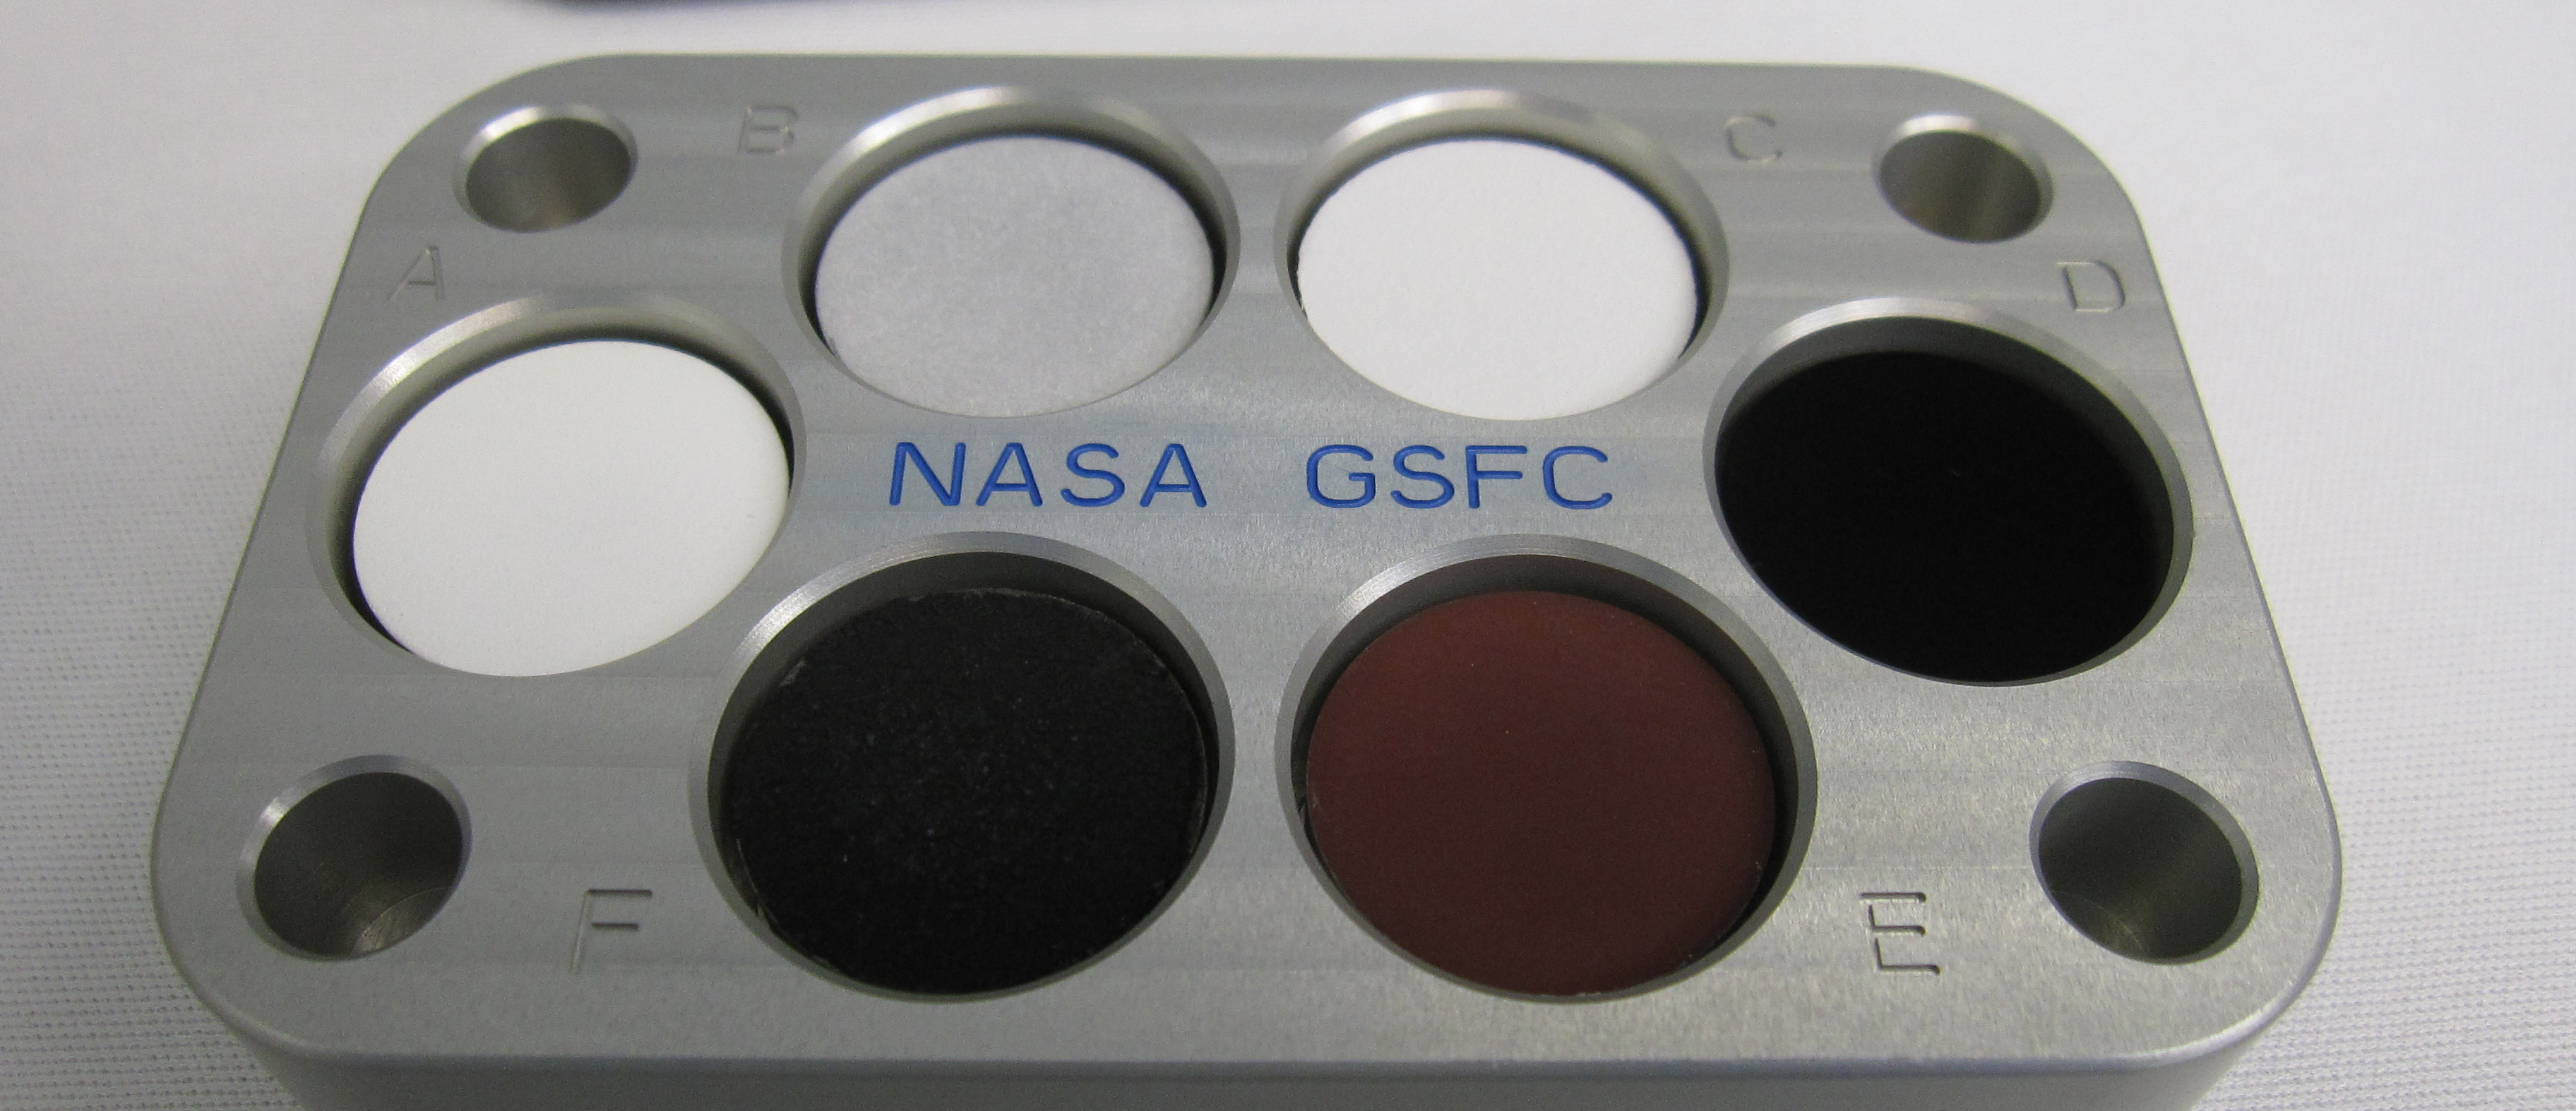 Why NASA Launched One of the Blackest Materials Ever Made Into Space